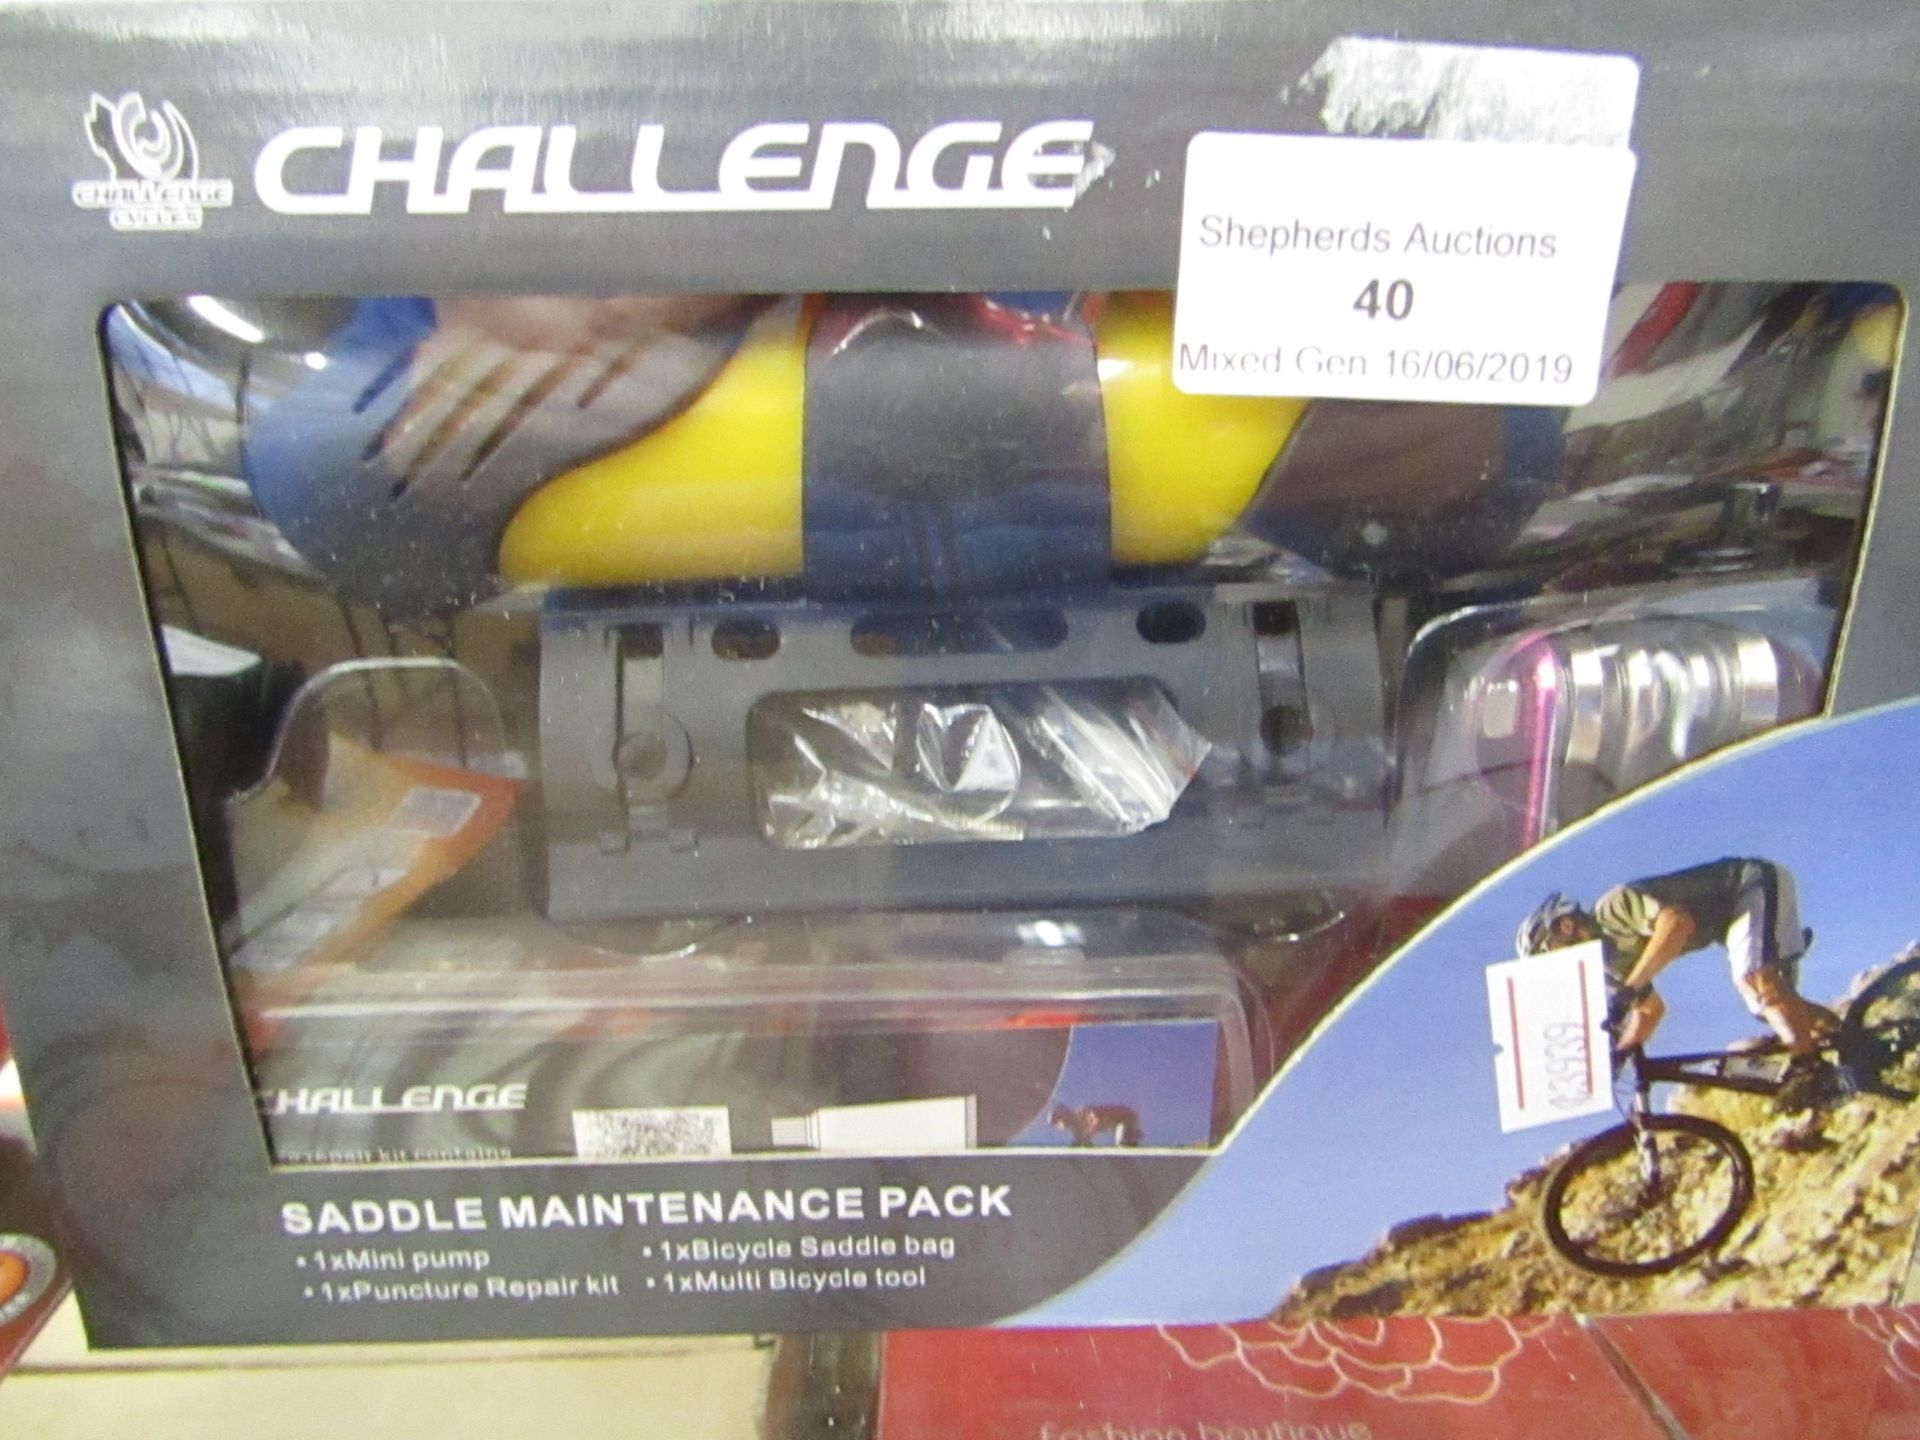 Lot 40 - Challenger Saddle Maintenance pack, includes a Pump, a Puncture repair kit, a Bicycle saddle bag